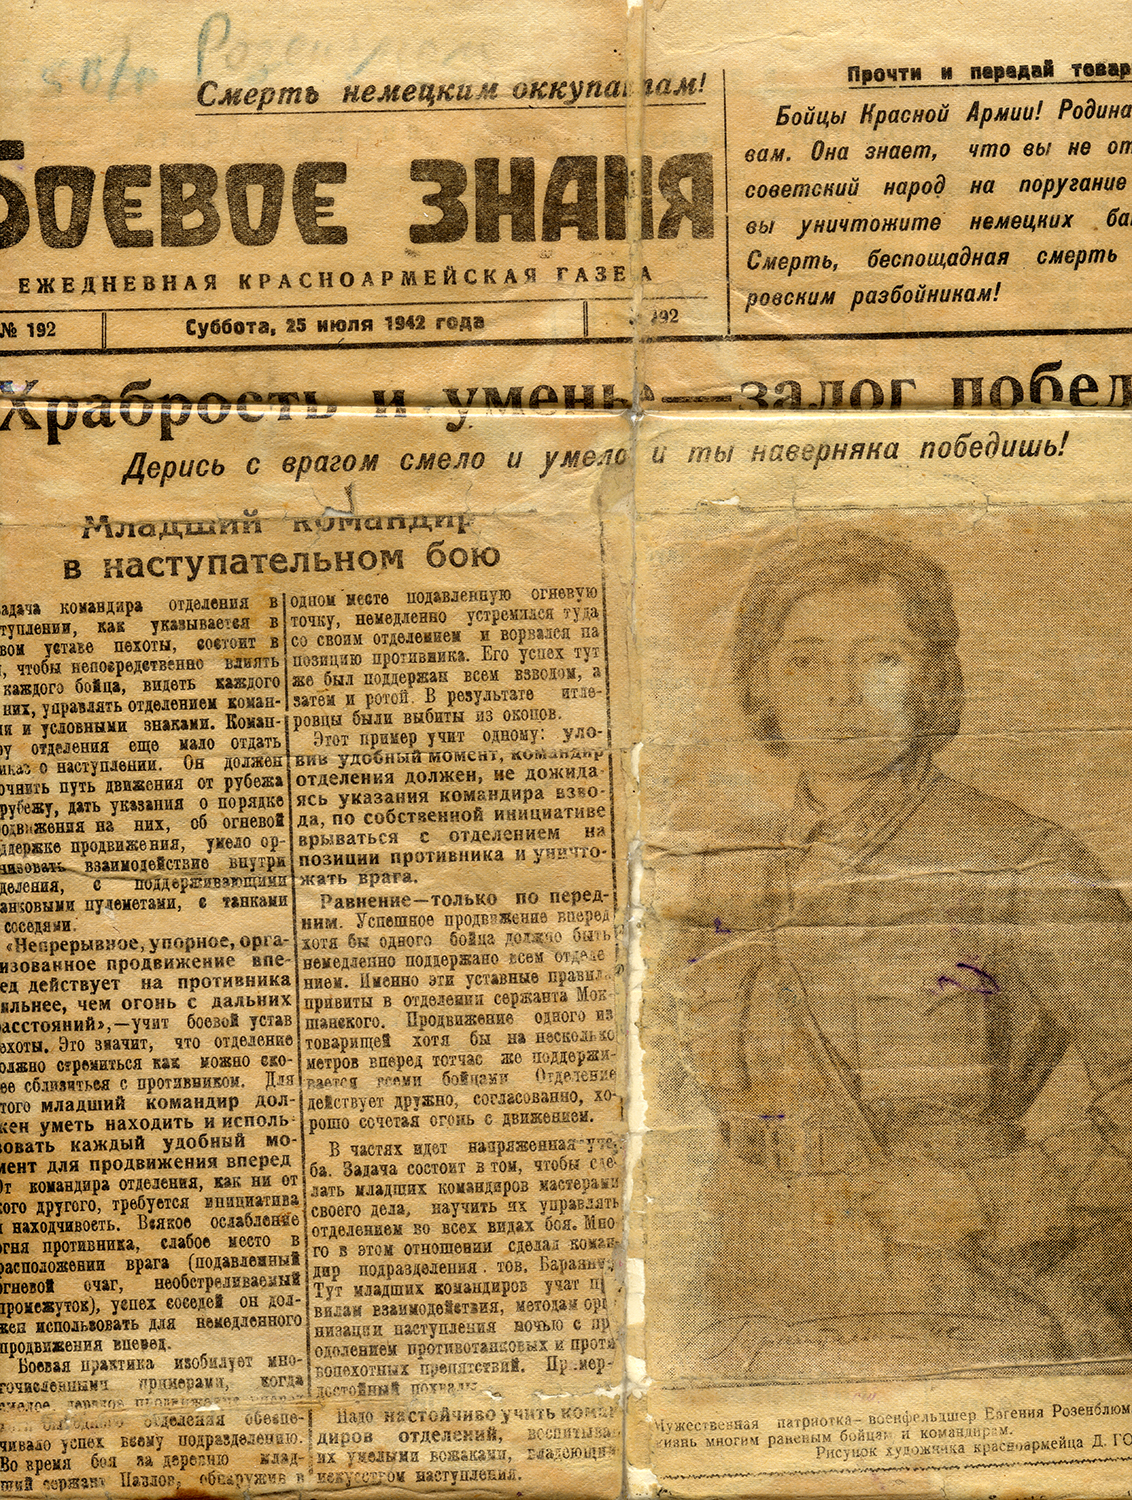 """Article in military newspaper """"Combat News,"""" July 25, 1942. Article image caption: """"Brave patriot military medic Evgeniya Rozenblum saved the lives of many wounded soldiers and officers."""""""